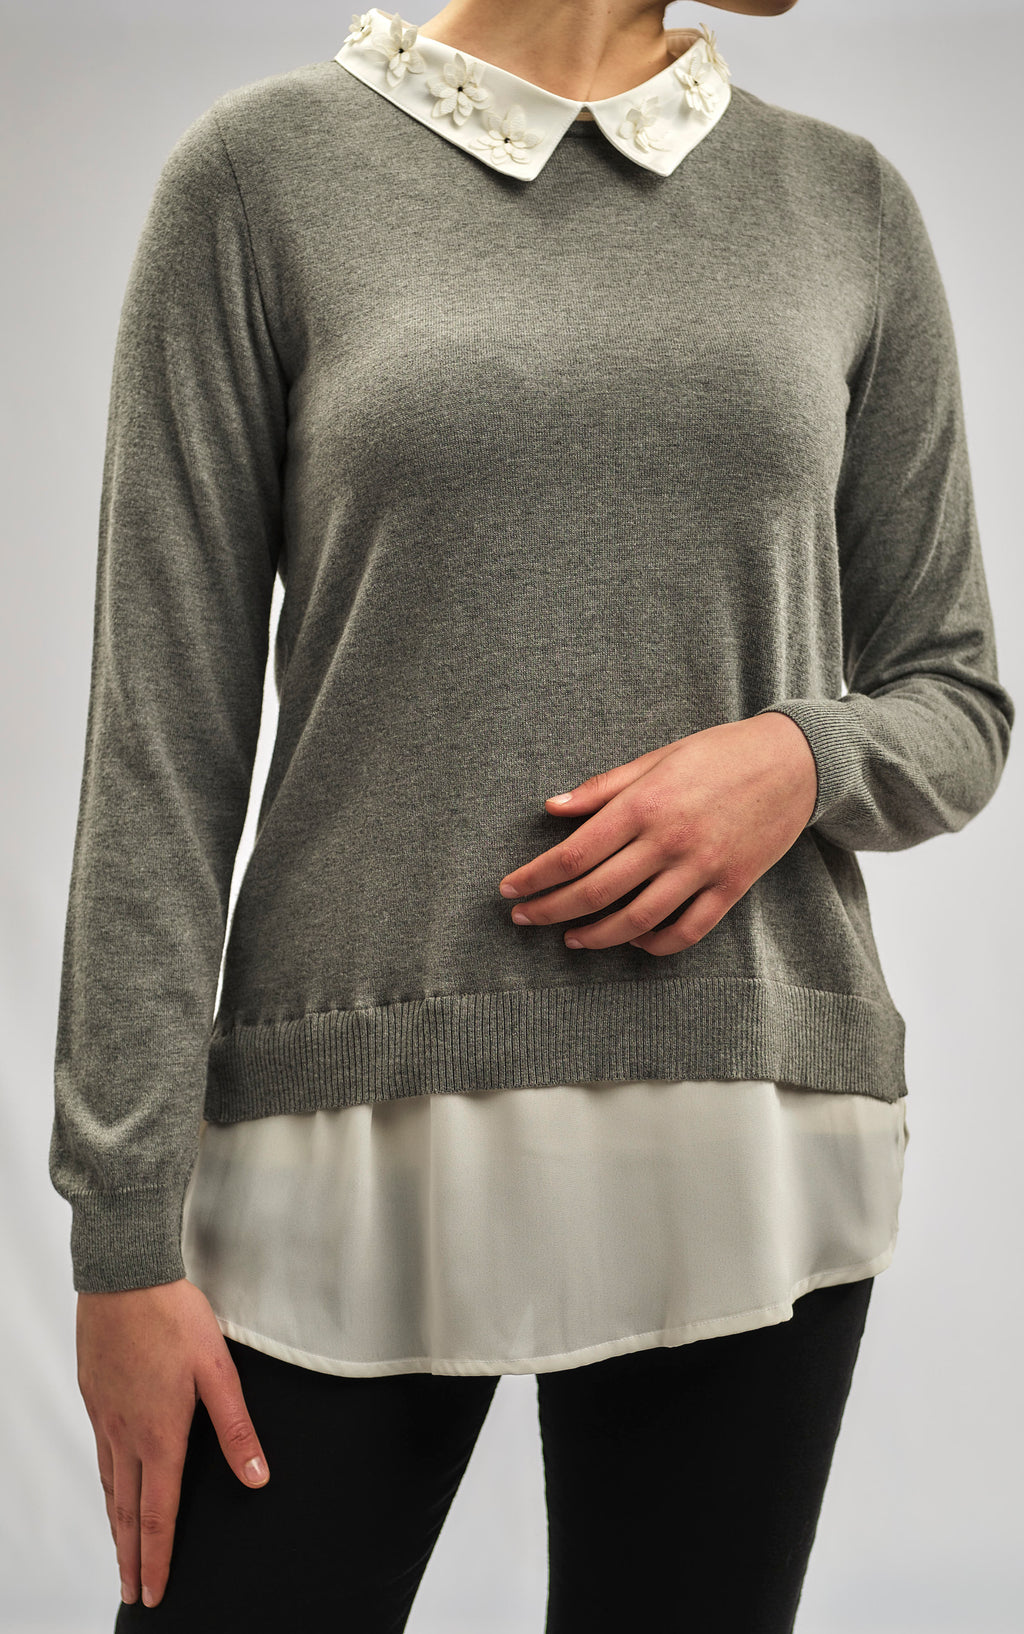 2 in 1 - CASHMERE FEEL COTTON KNITWEAR BLOUSE AND CRYSTALS STONES WITH SILKY CREPE CHIFFON COLLAR AND CUFFS